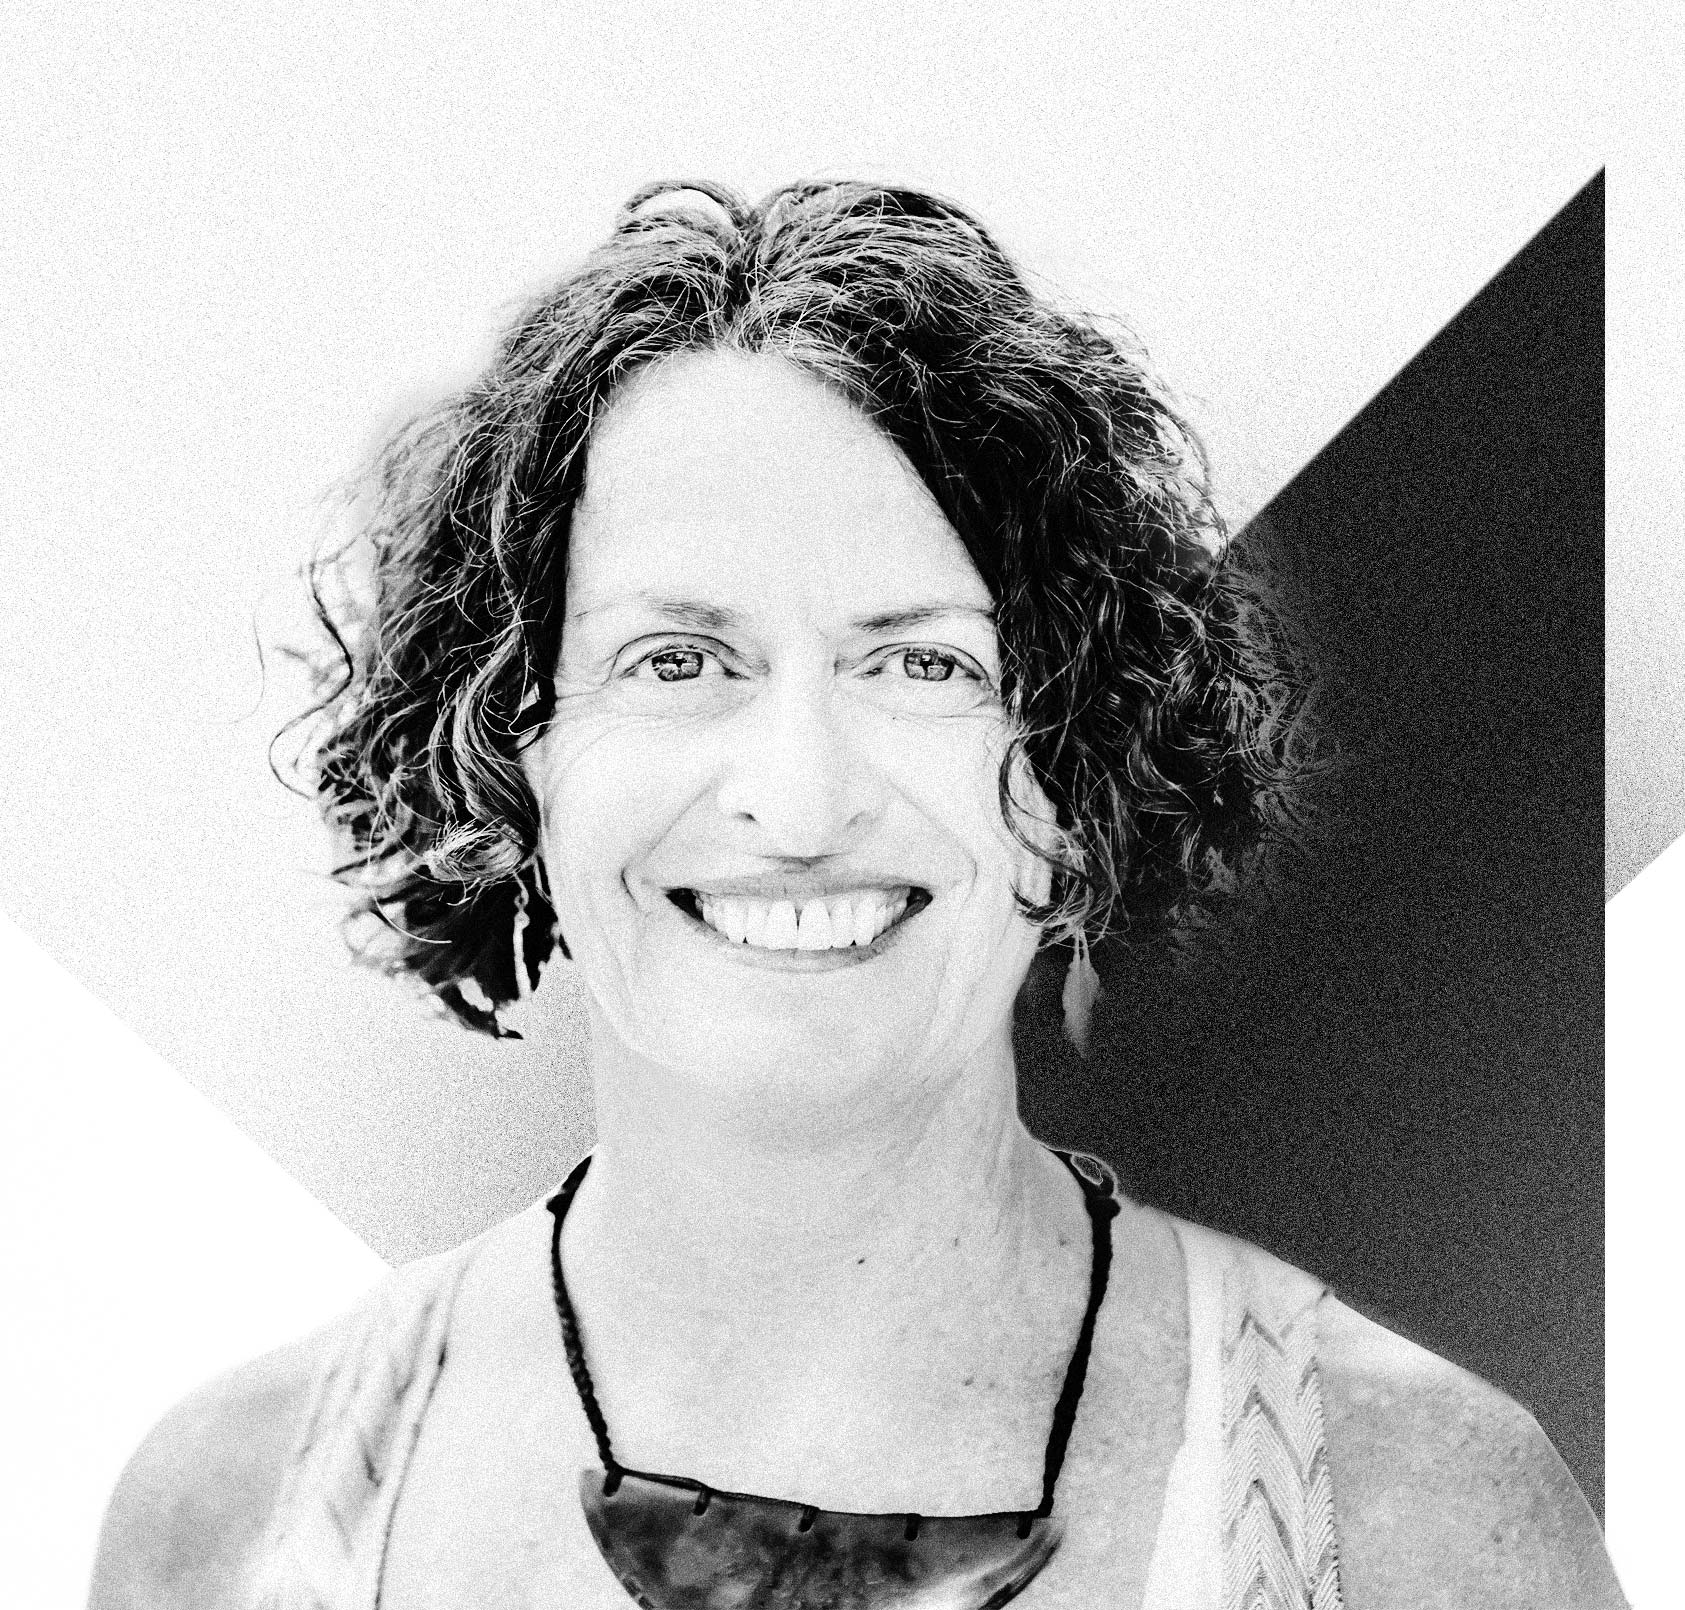 Louise Marra - Louise is Programme Director of The NZ Leadership Programme, a partner of Spirited Leadership and also the founder of Unity House.Her leadership experience has spanned a broad range of sectors having held senior roles within Government, the private sector, philanthropy and the NGO sector. Louise has her coaching and development practice which brings together facilitation, meditation, mindfulness, nature-based programmes, yoga, qi gong, transpersonal psychology and shadow work.